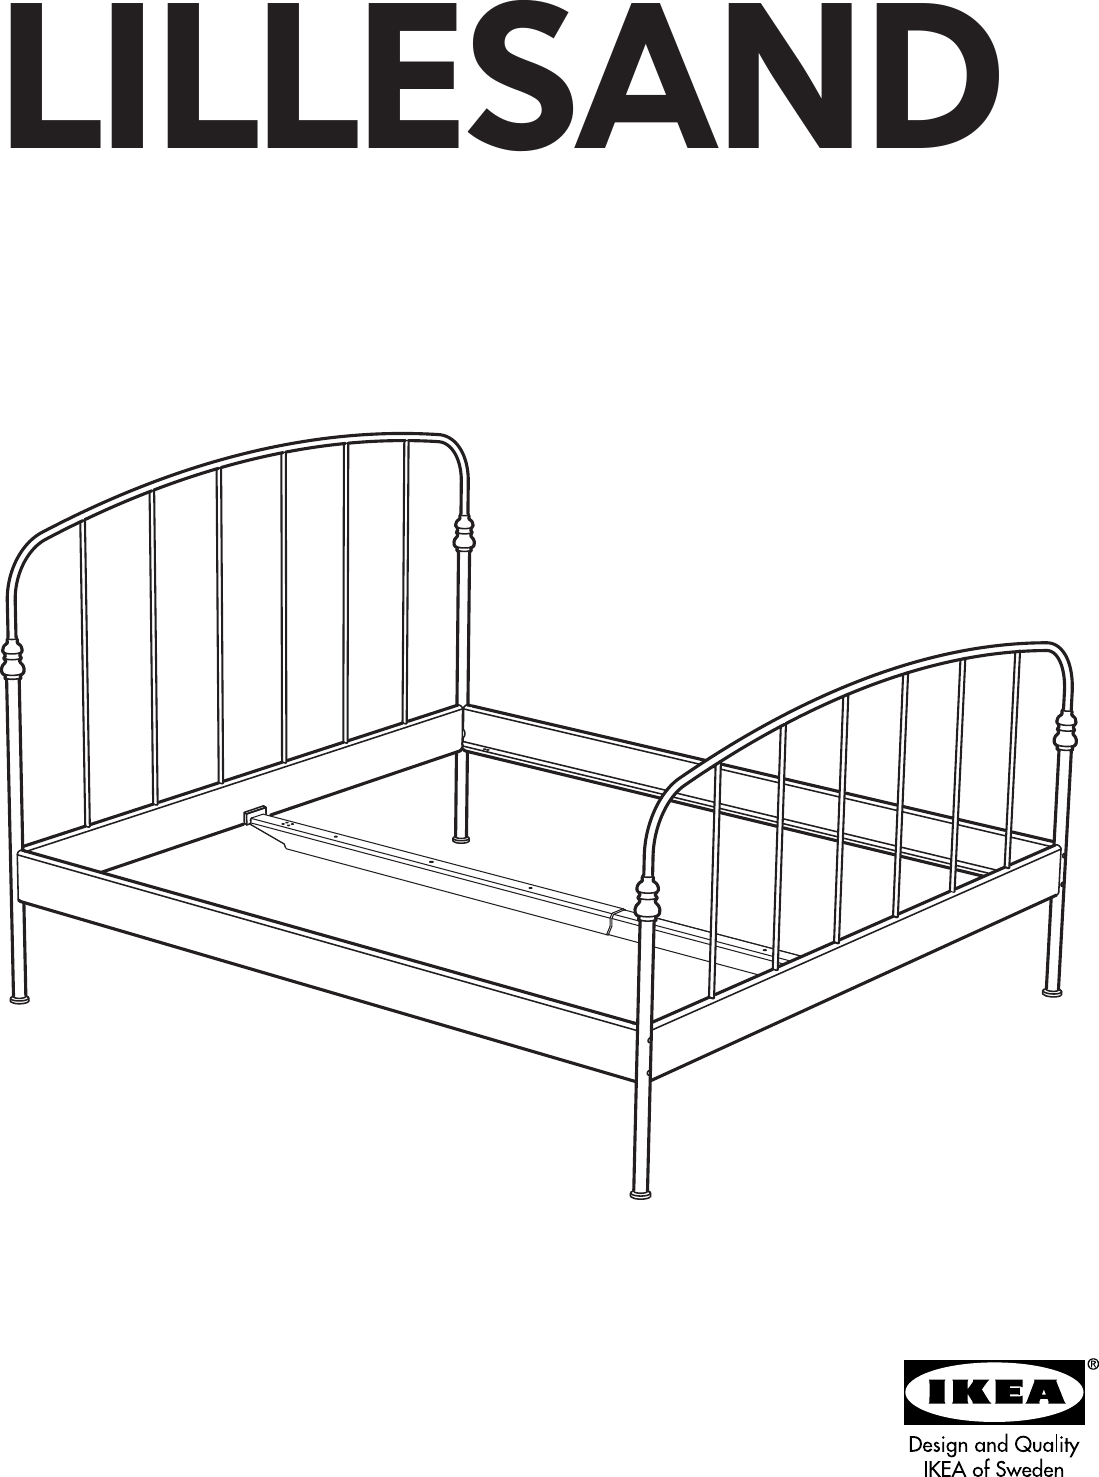 ikea malm bed instructions 2004